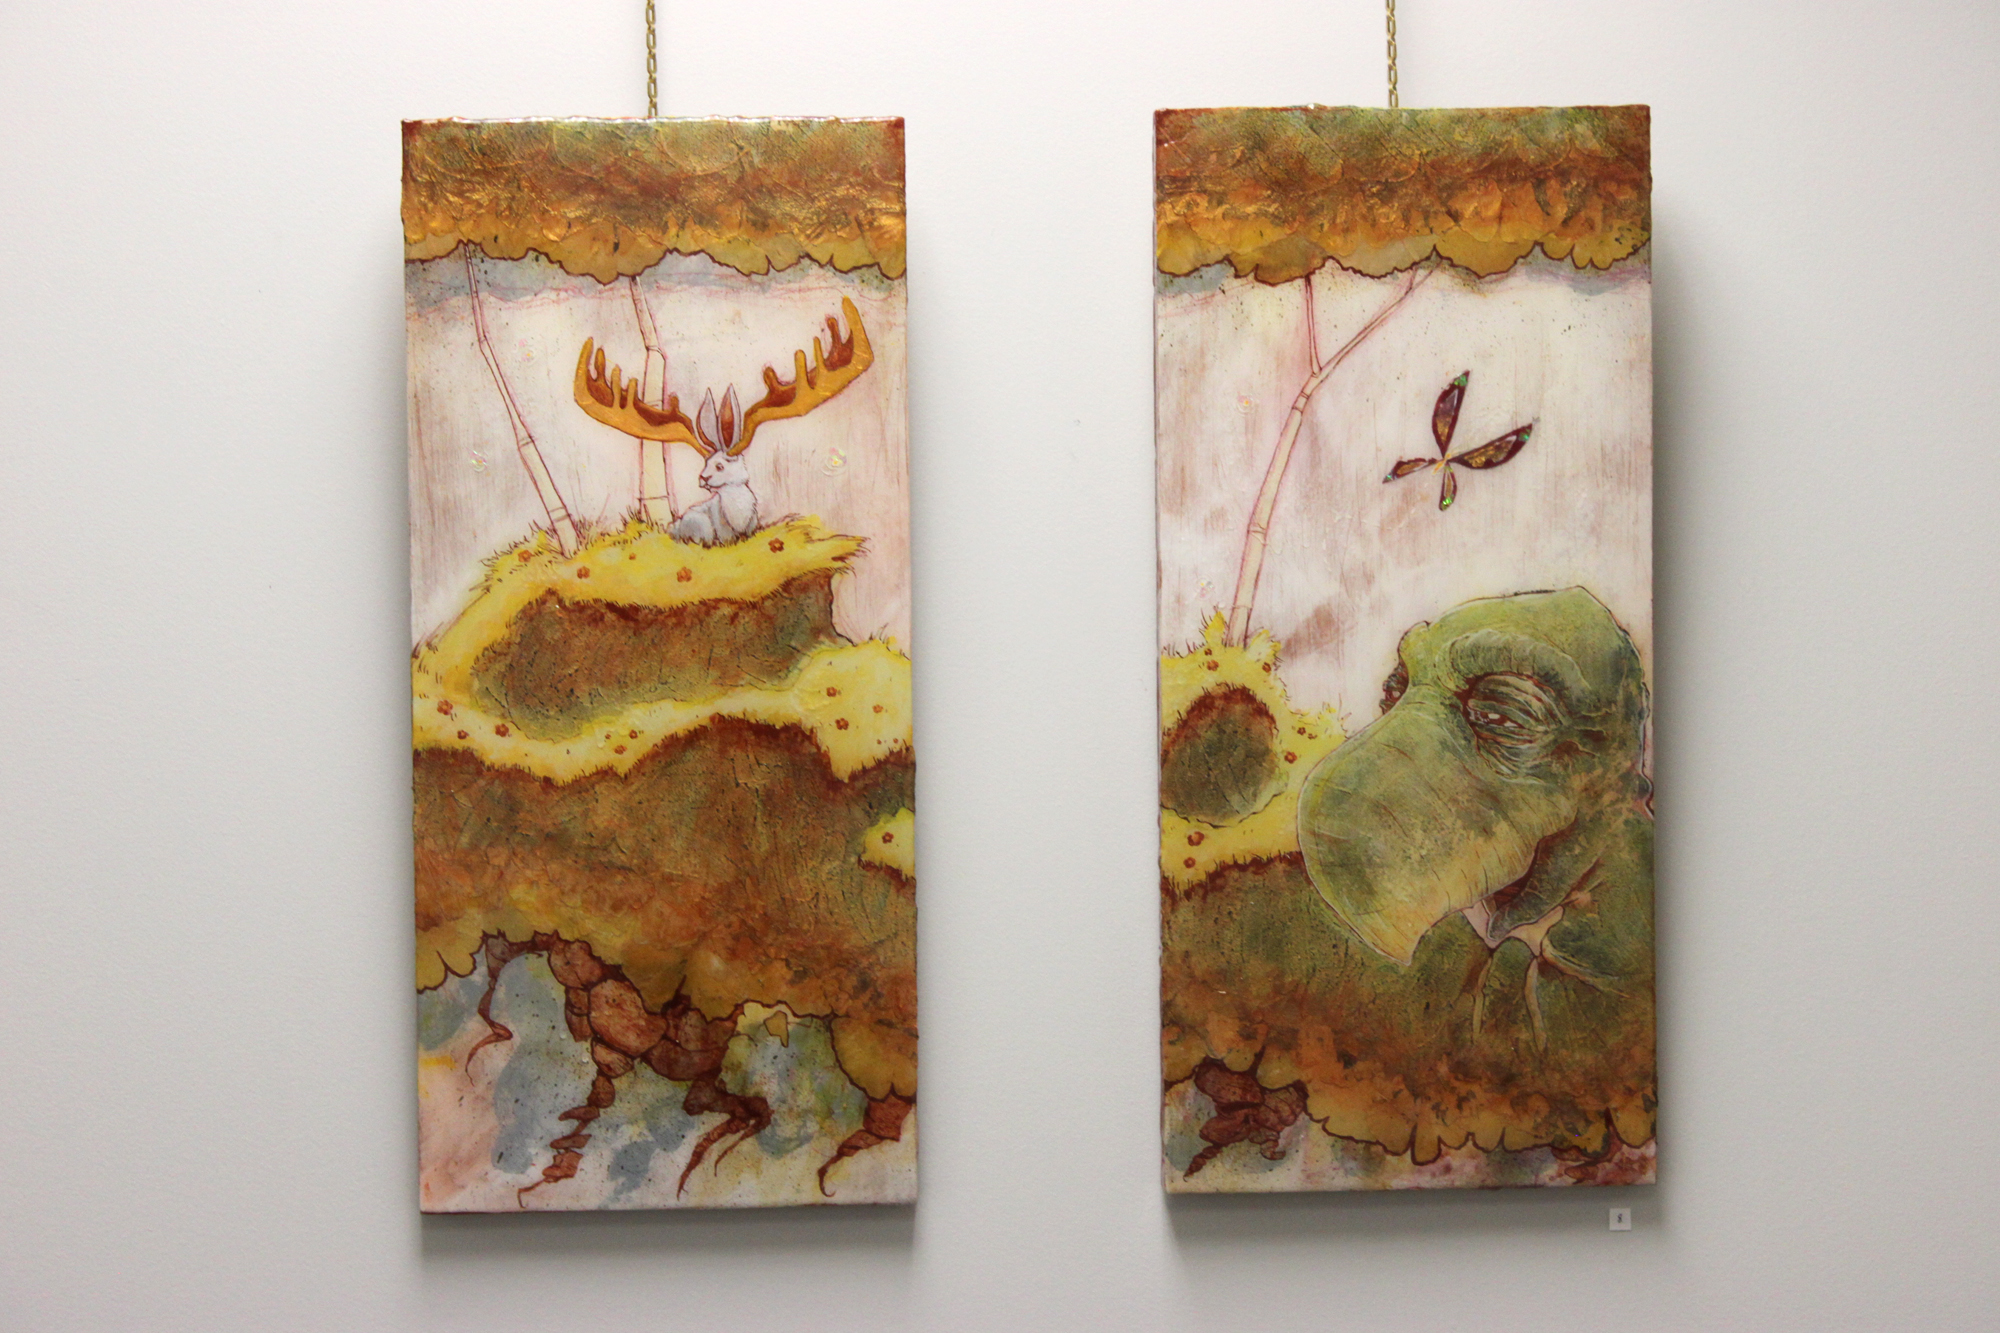 Floating Lands #5 (Diptych), Mixed Media with pressed leaves, 2015 - Kent Smith, $900